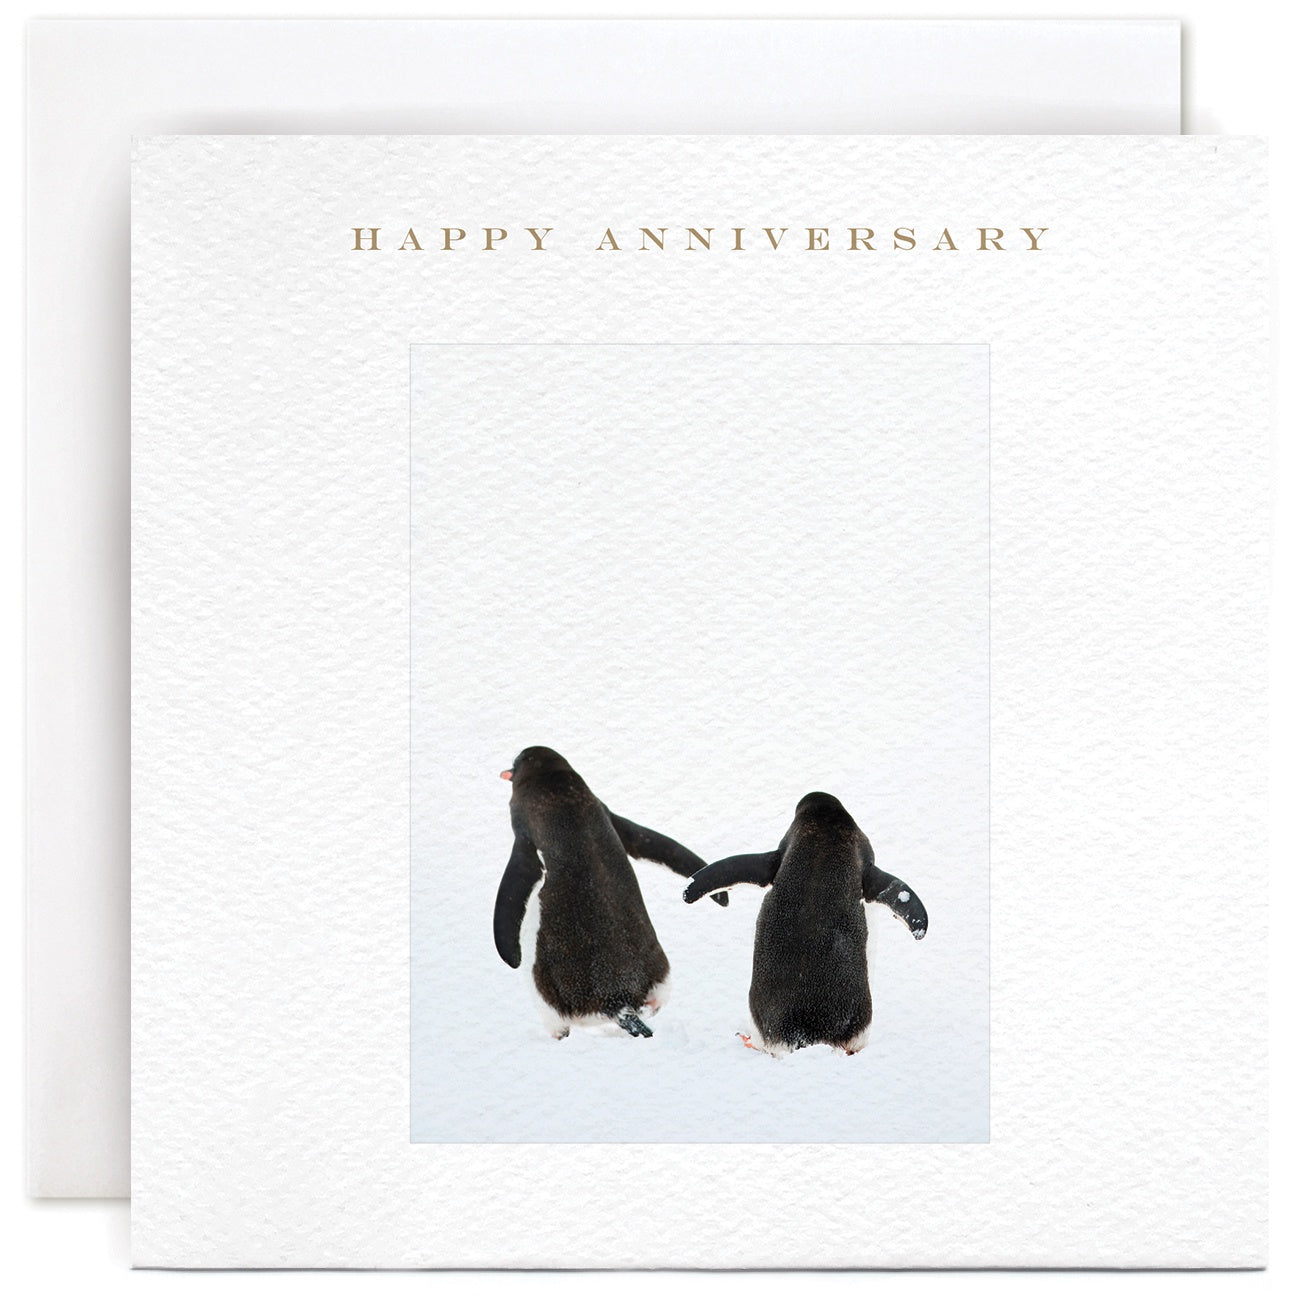 Happy Anniversay - Penguins hands